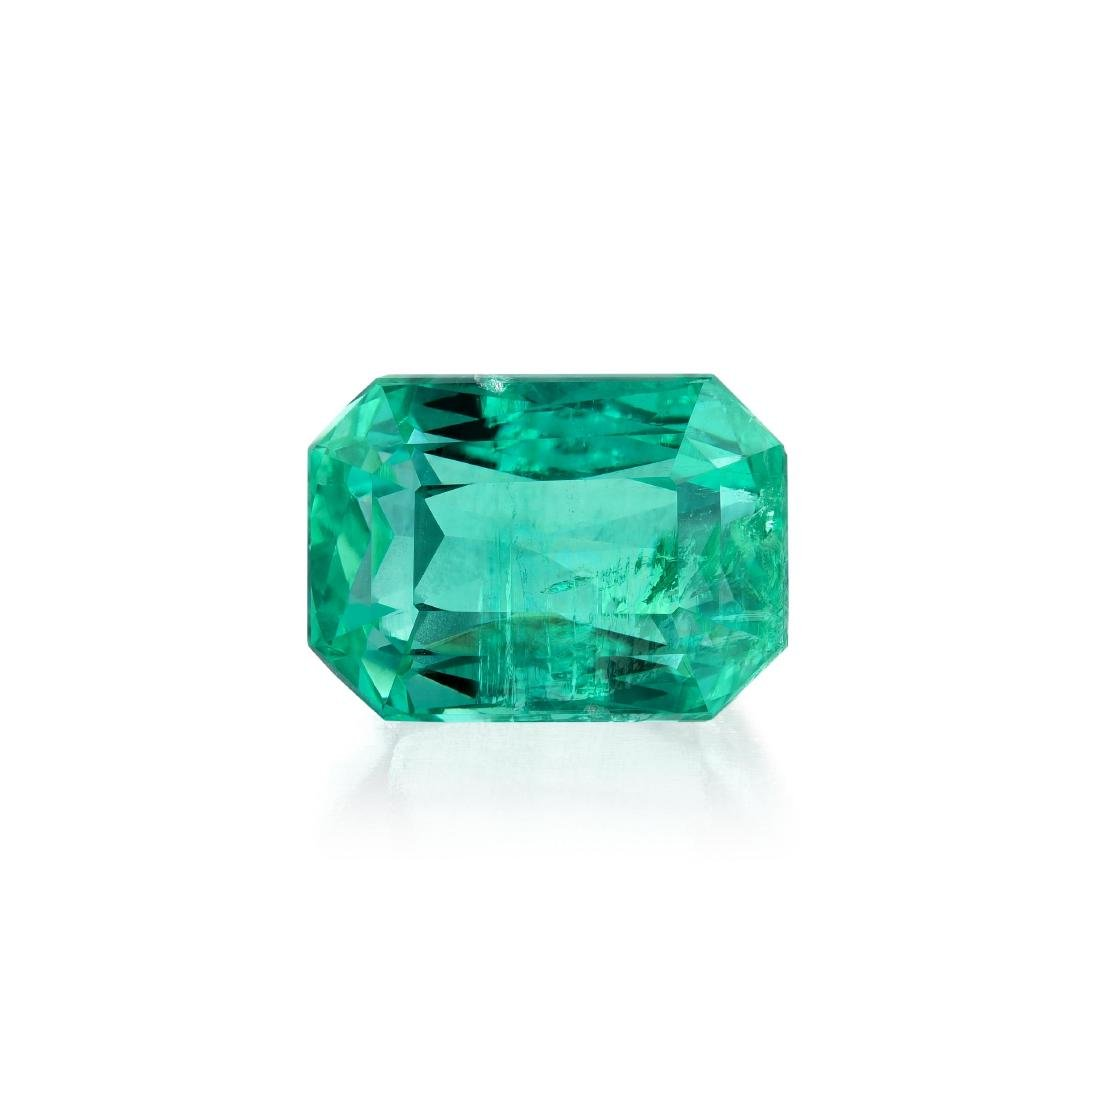 An Unmounted 5.27-Carat Colombian Emerald